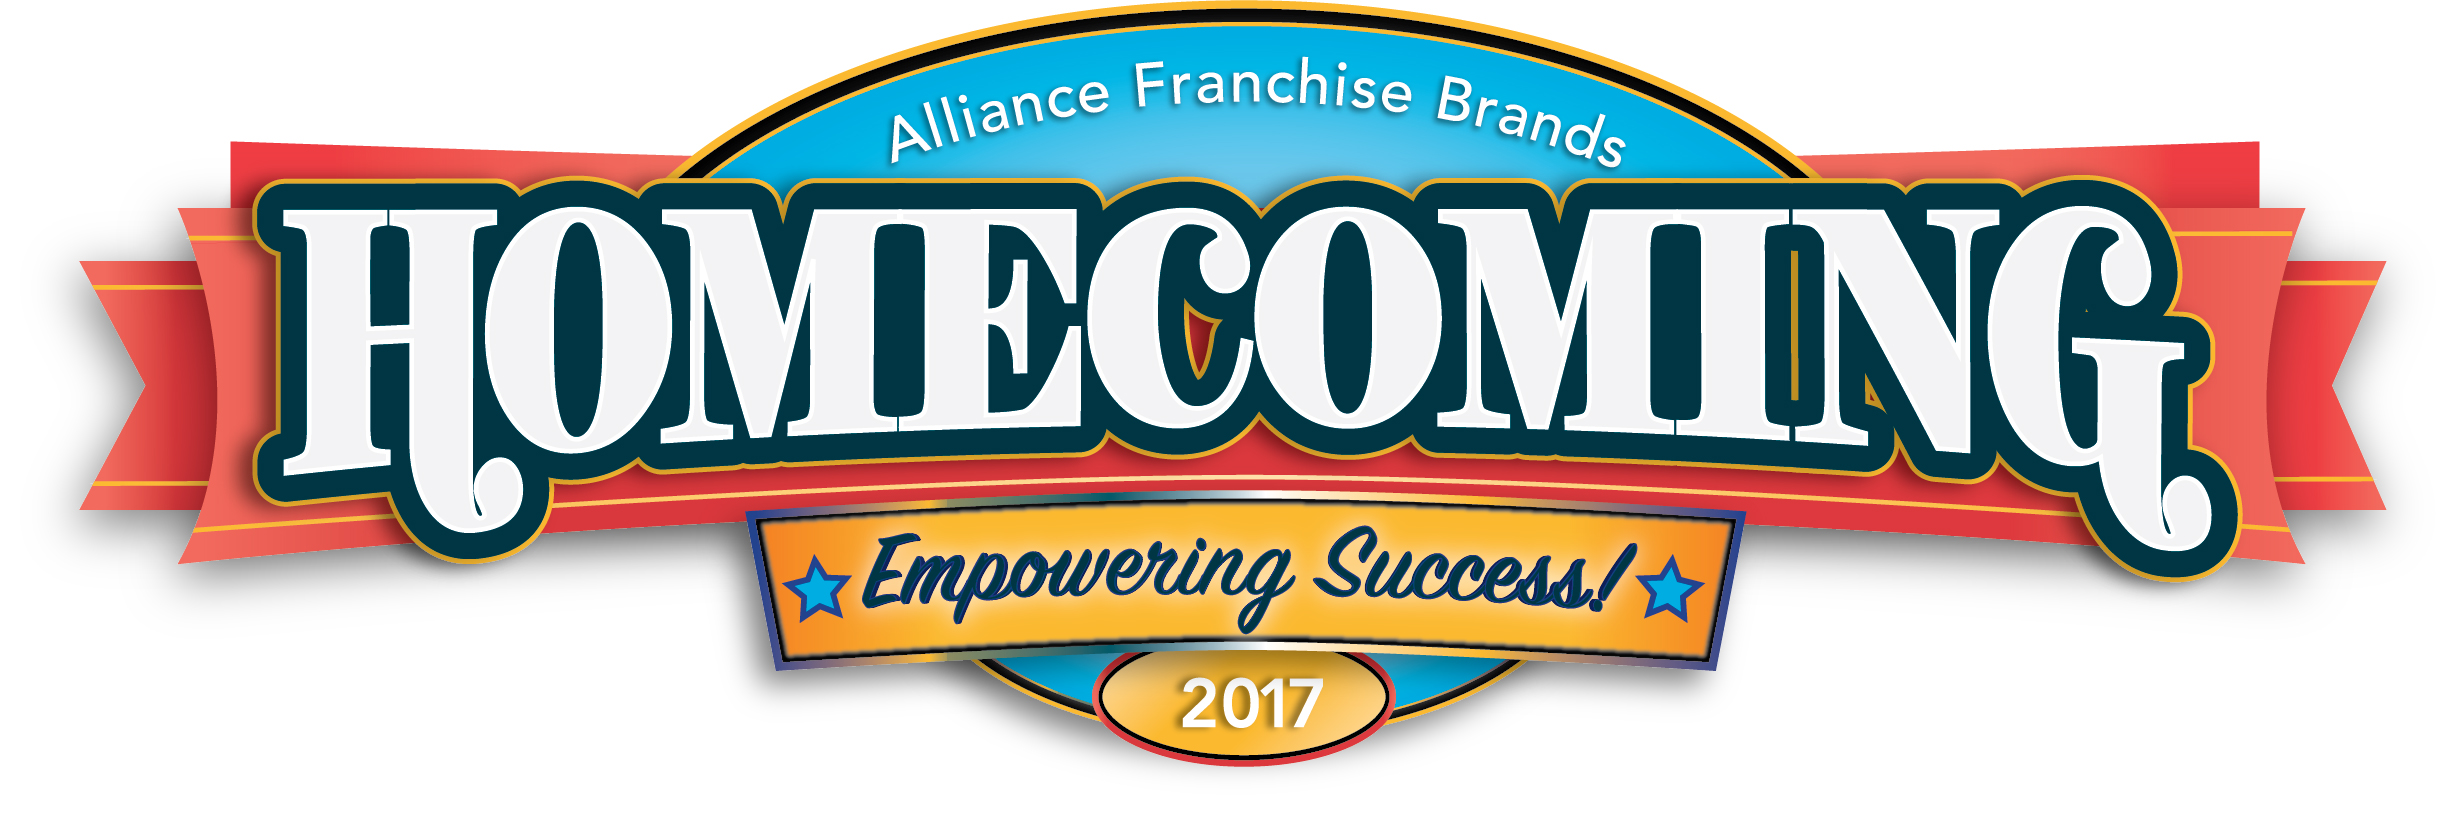 2017 Homecoming: Empowering Success!